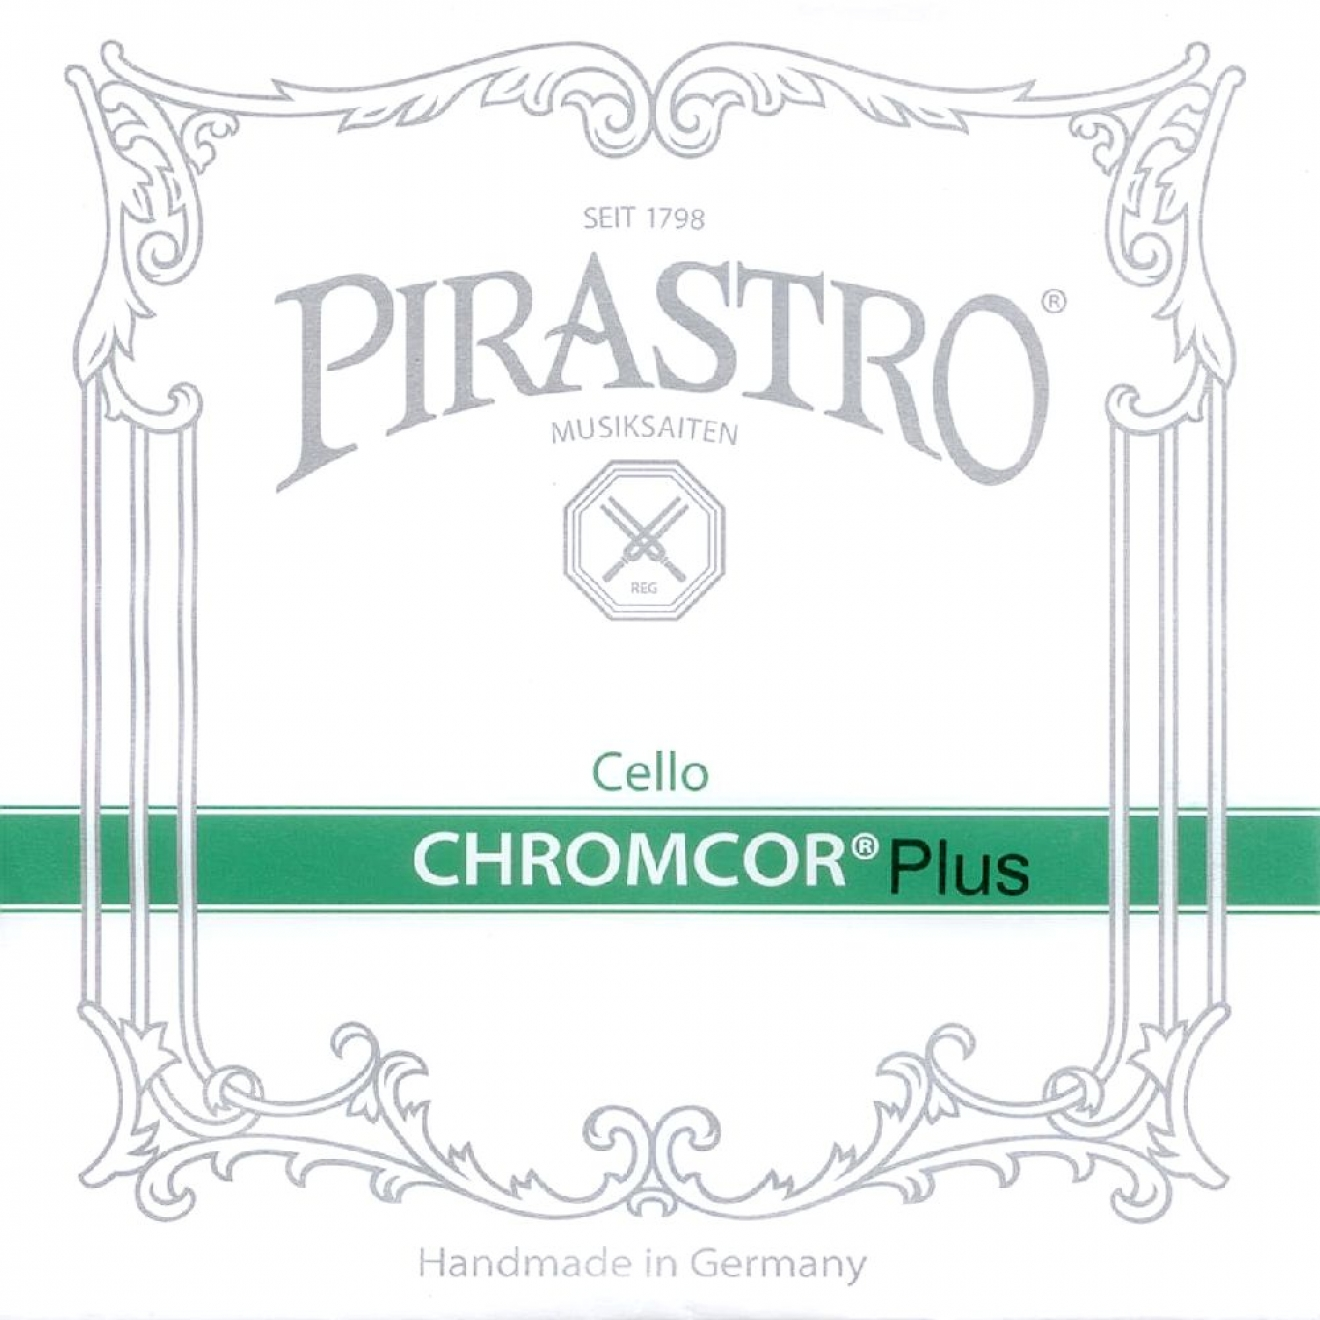 PIRASTRO Chromcor Plus Cello G